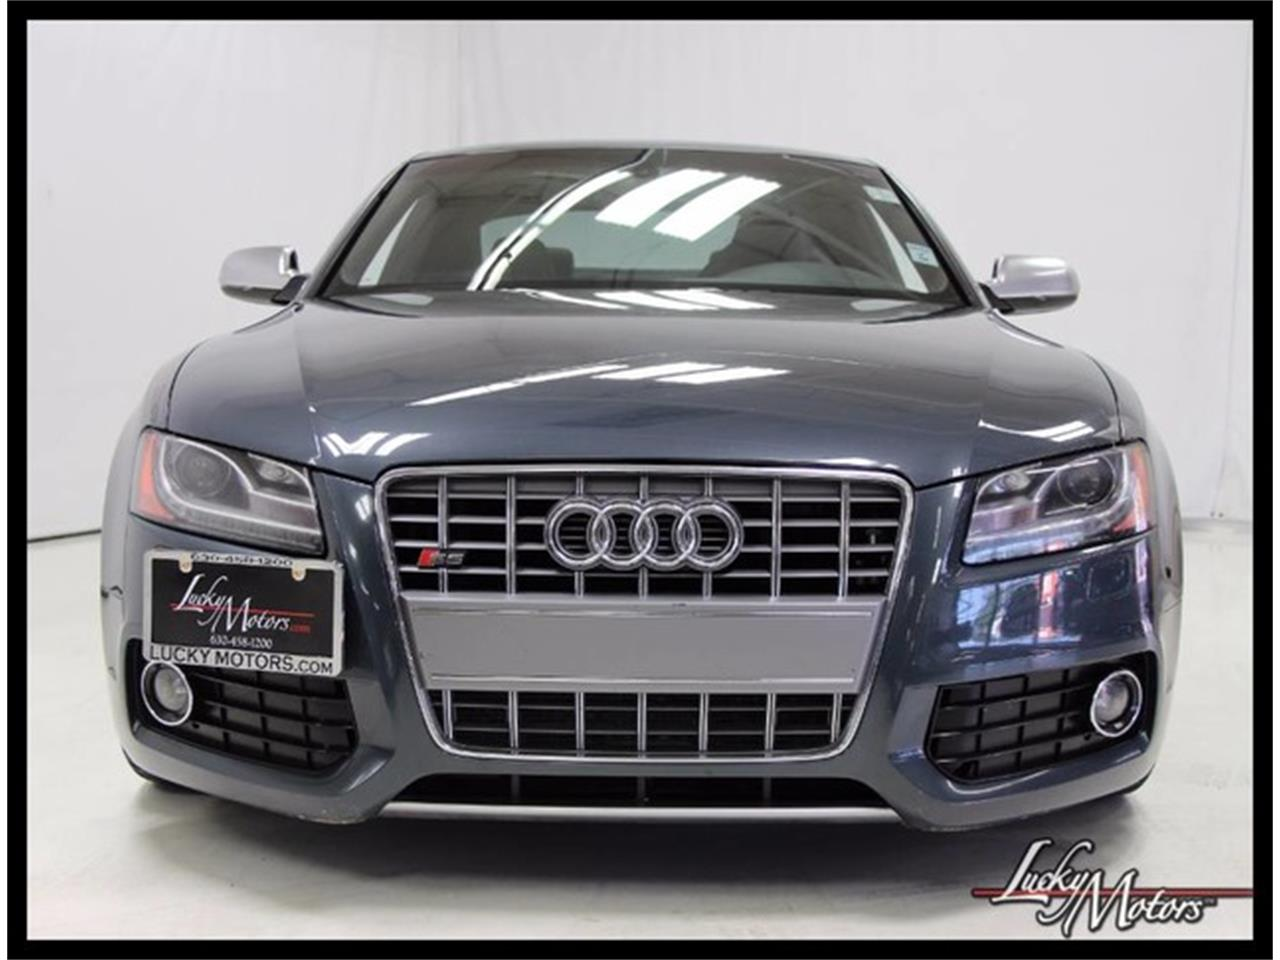 Large Picture of 2010 Audi S5 located in Elmhurst Illinois - $25,980.00 - M3ZZ